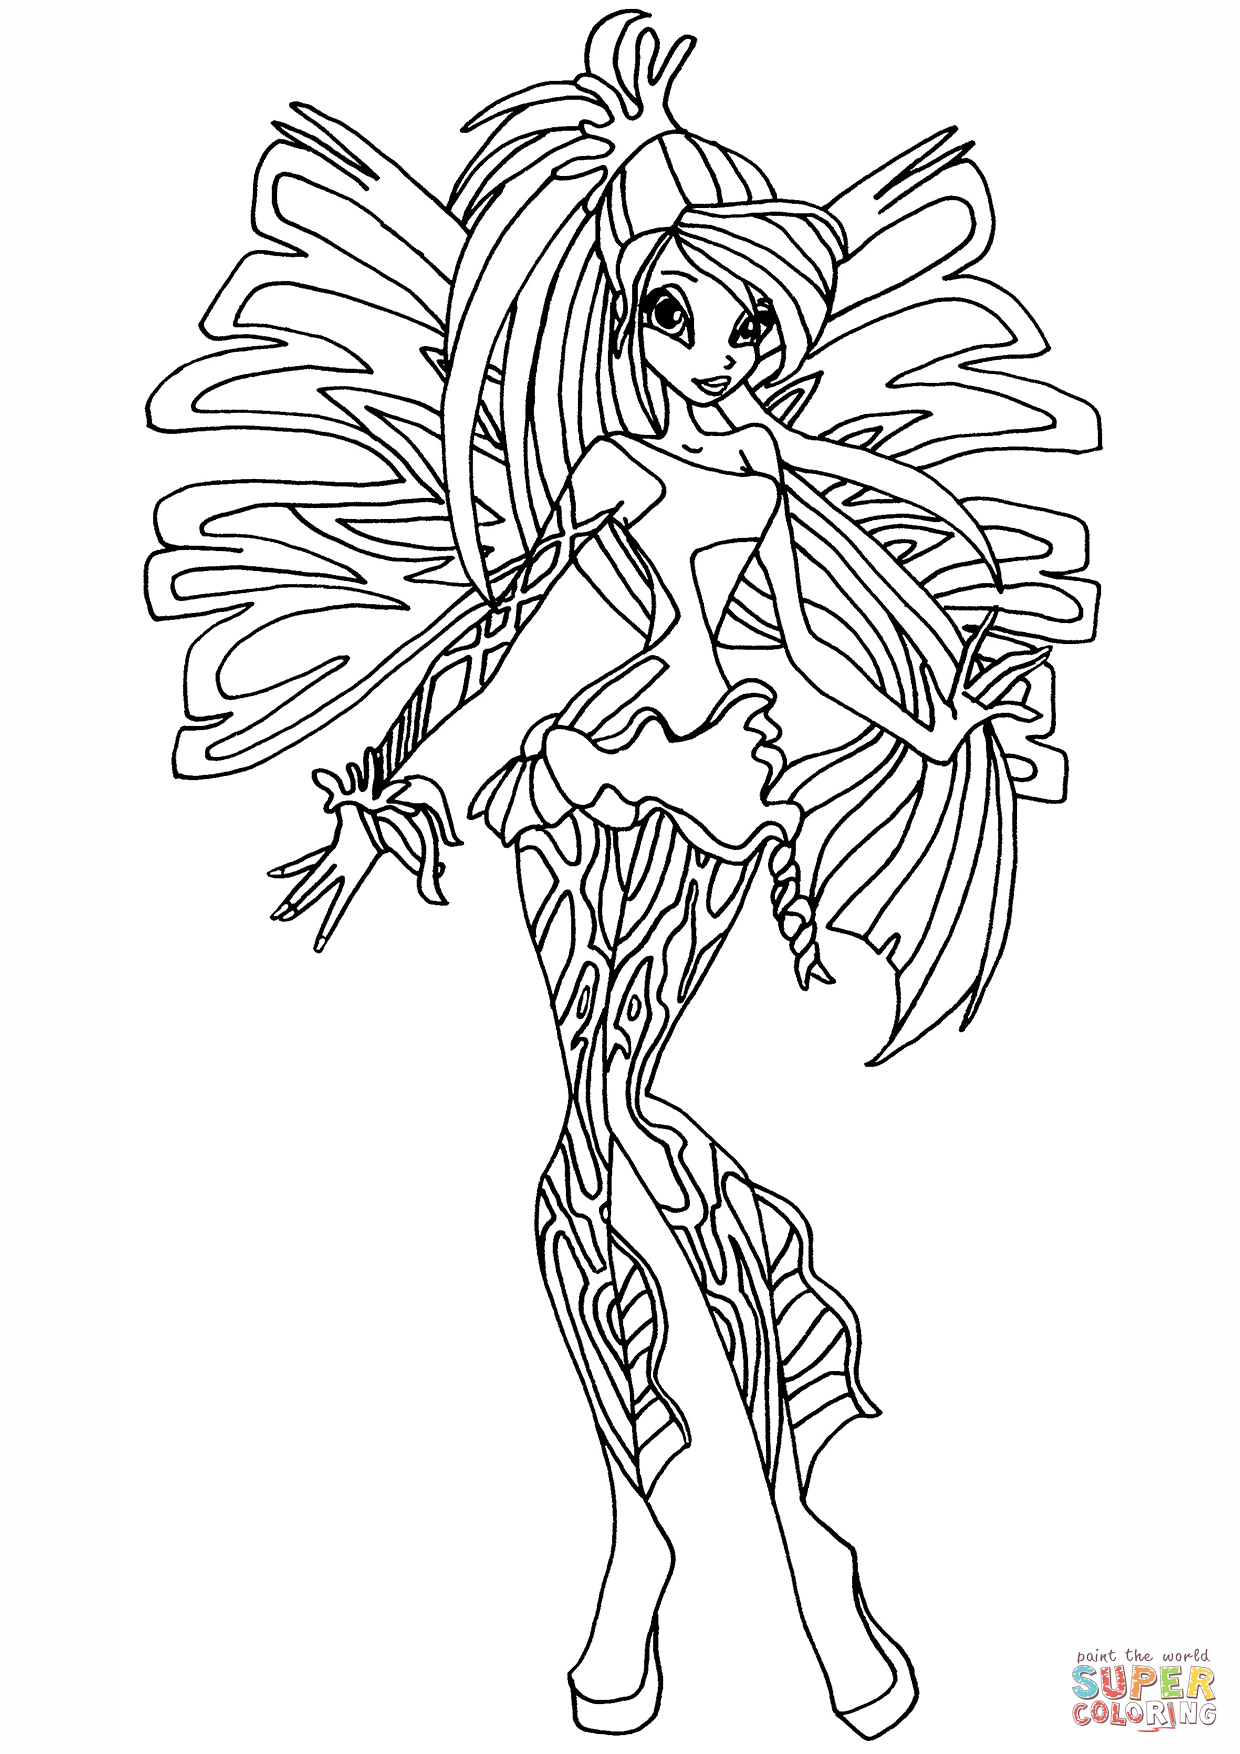 winx club sirenix bloom coloring page free printable coloring pages